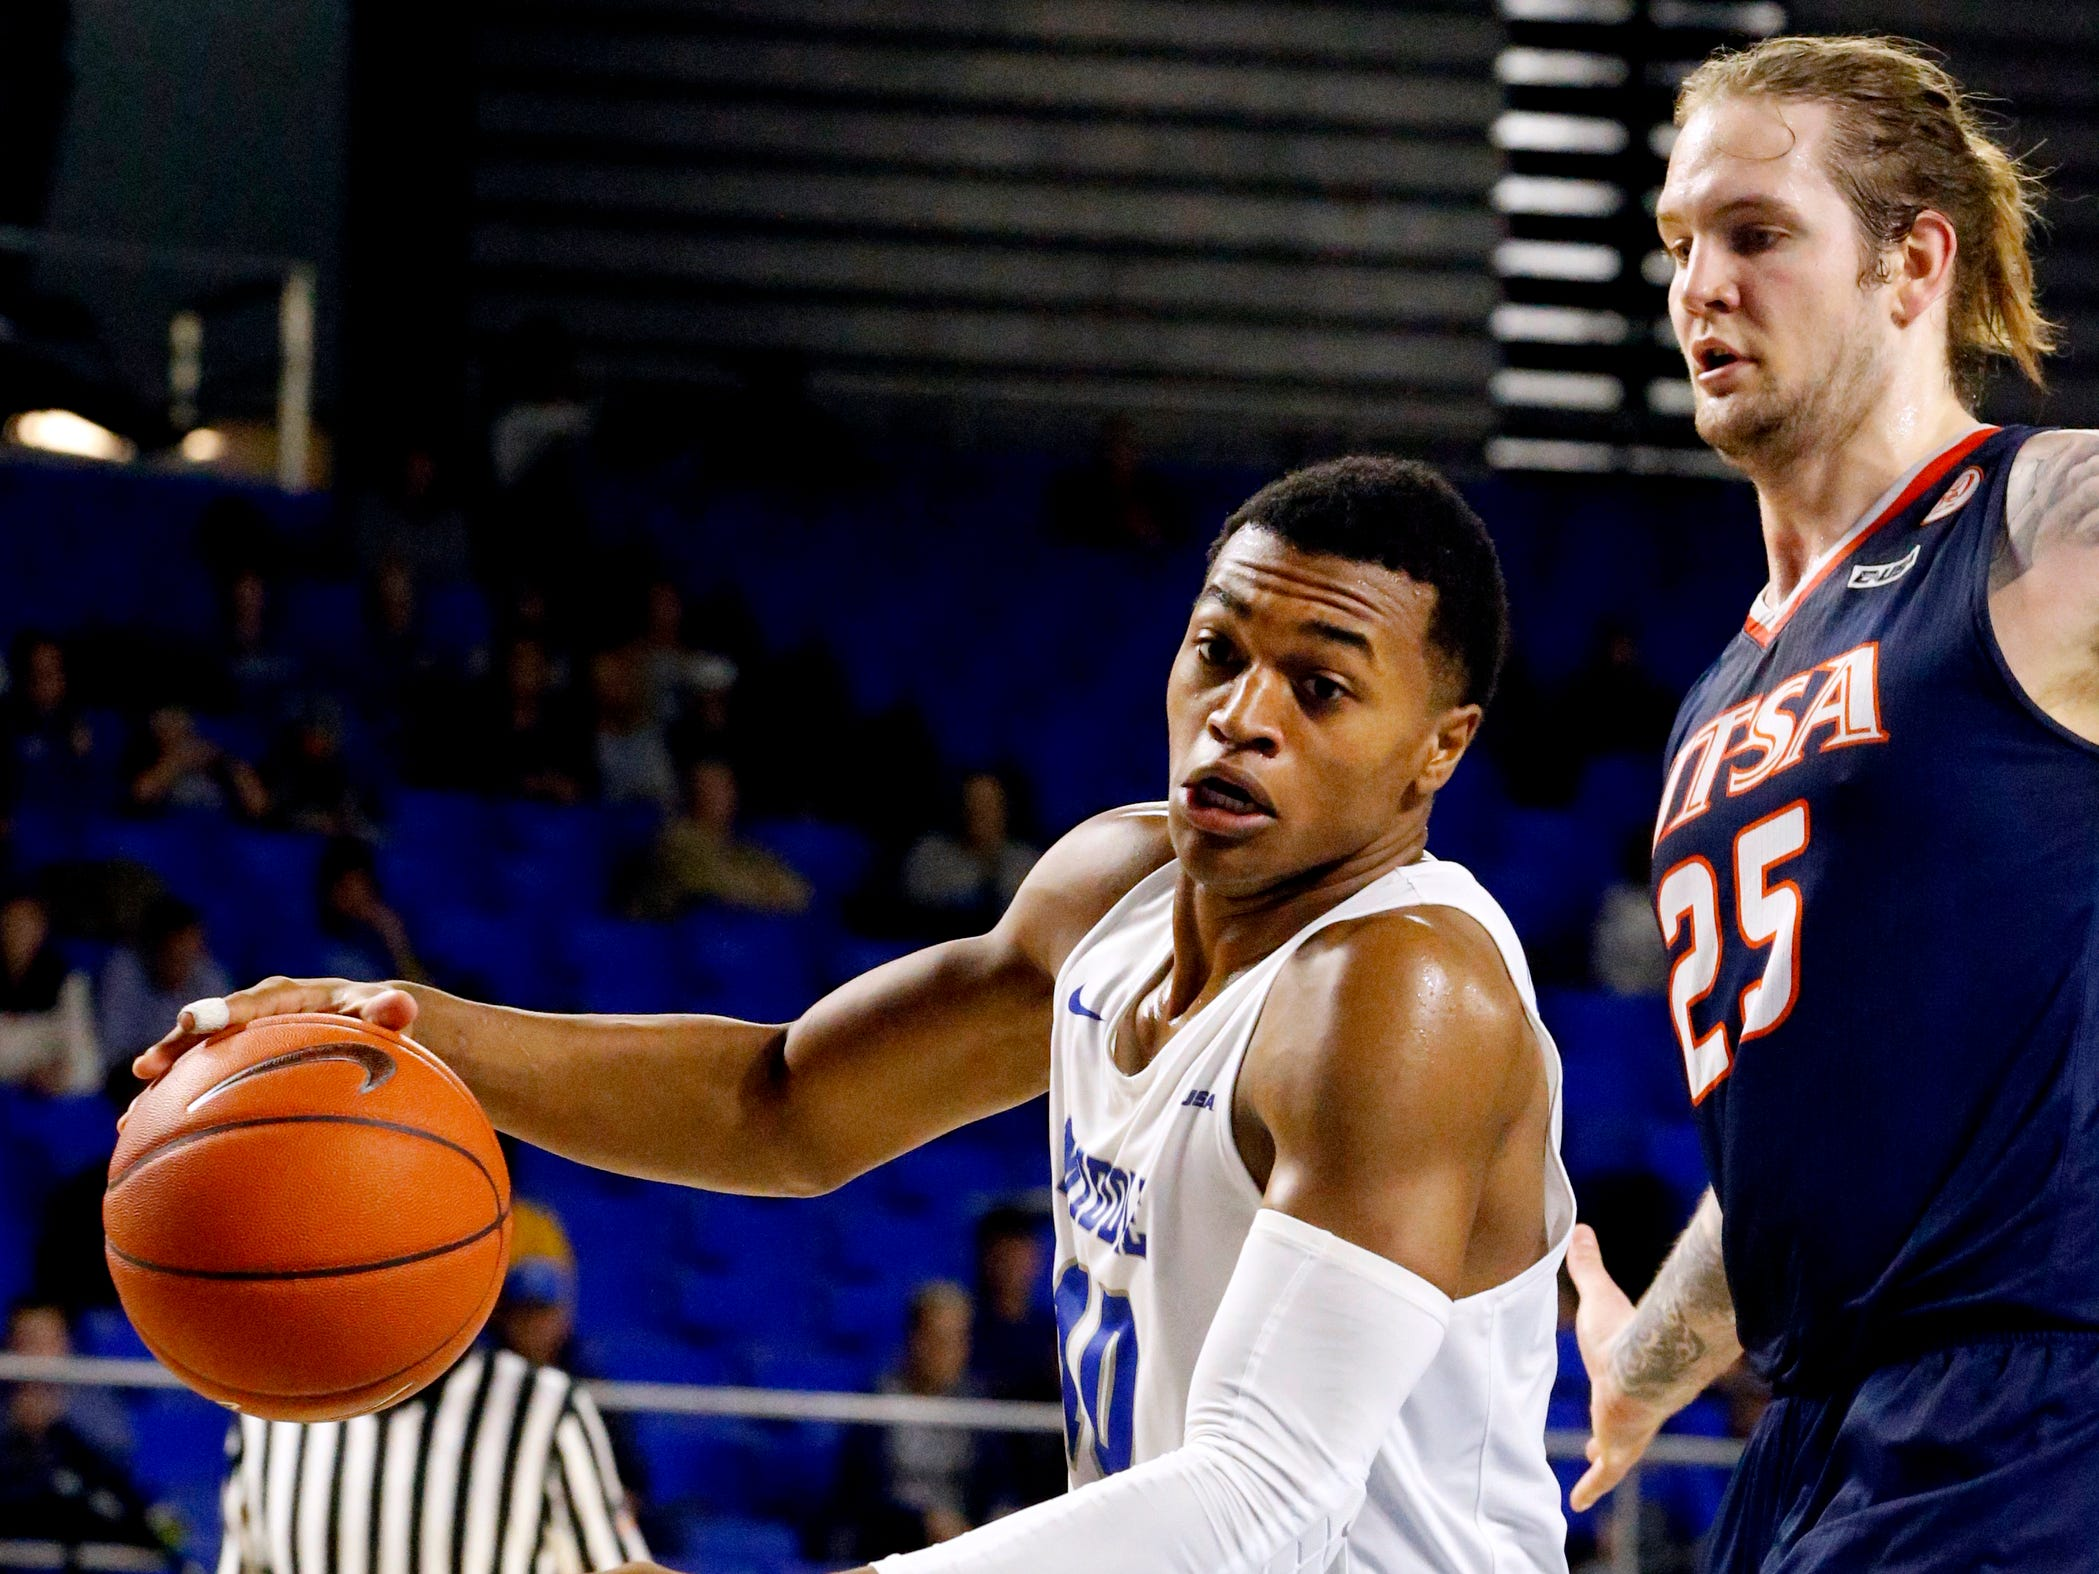 MTSU's guard Jayce Johnson (10) drives to the basket as UTSA's forward Nick Allen (25) guards him on Thursday Jan. 17, 2019.